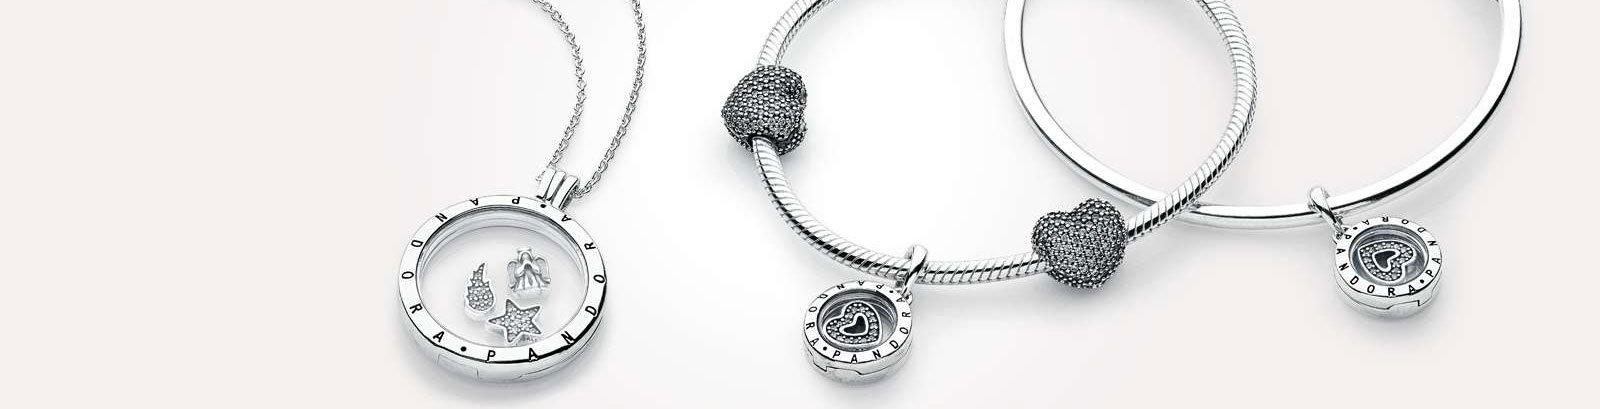 ec60f8462 Home · PANDORA Necklaces; Floating Lockets. Floating Lockets